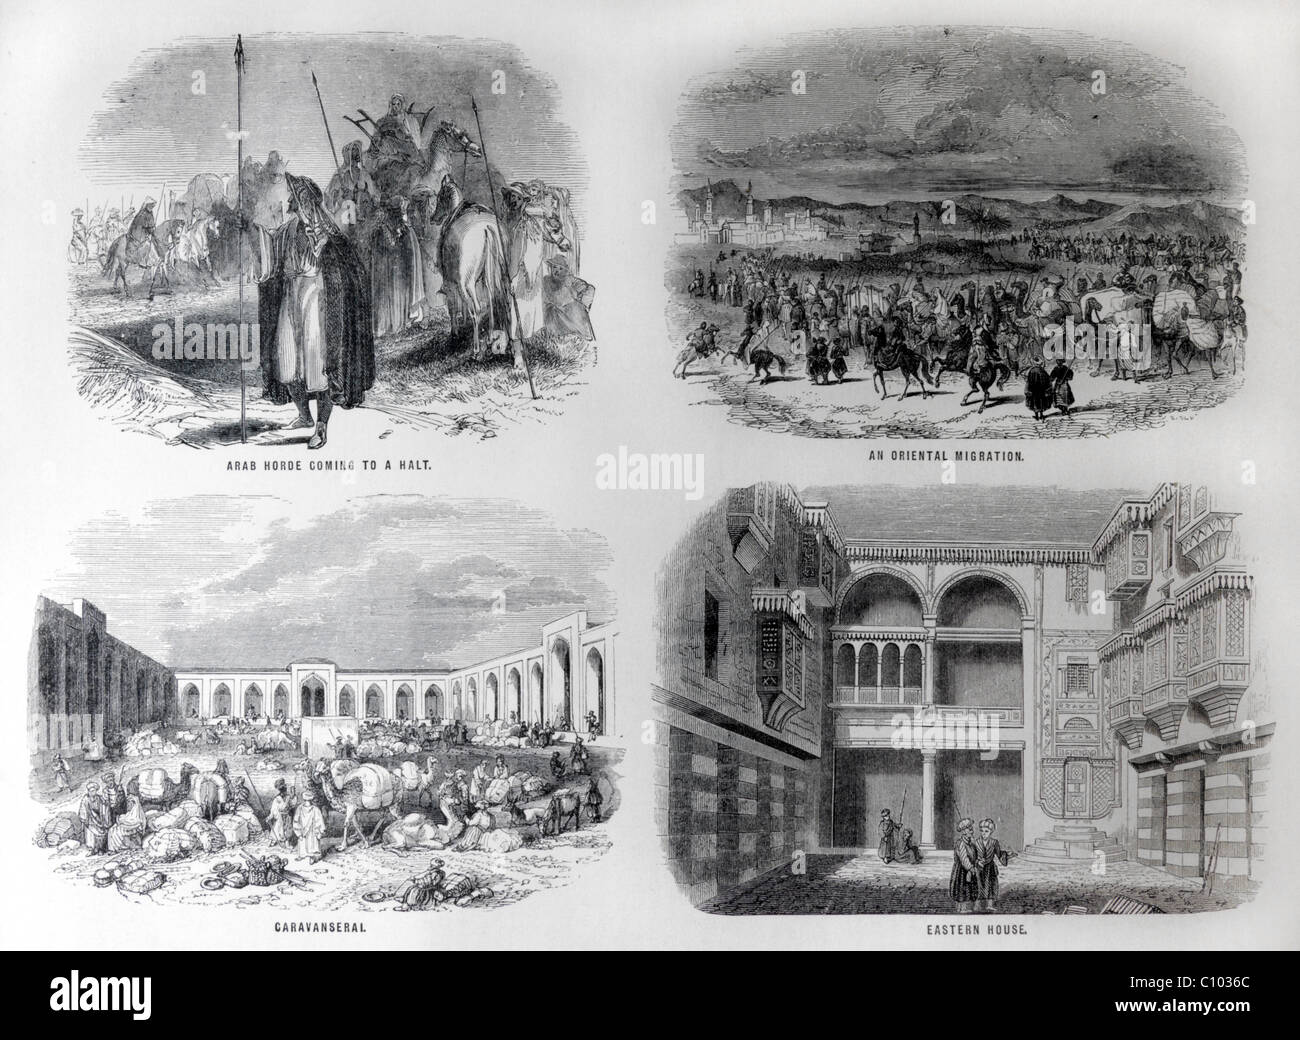 Bible Illustrations Of Arab Horses Coming To A Halt, An Oriental Migration, Caravanseral And An Eastern House - Stock Image